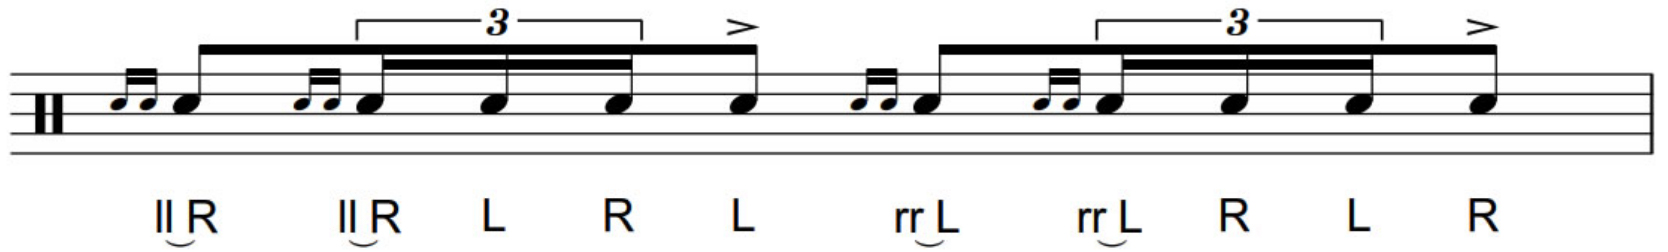 How to play the double ratamacue rudiment